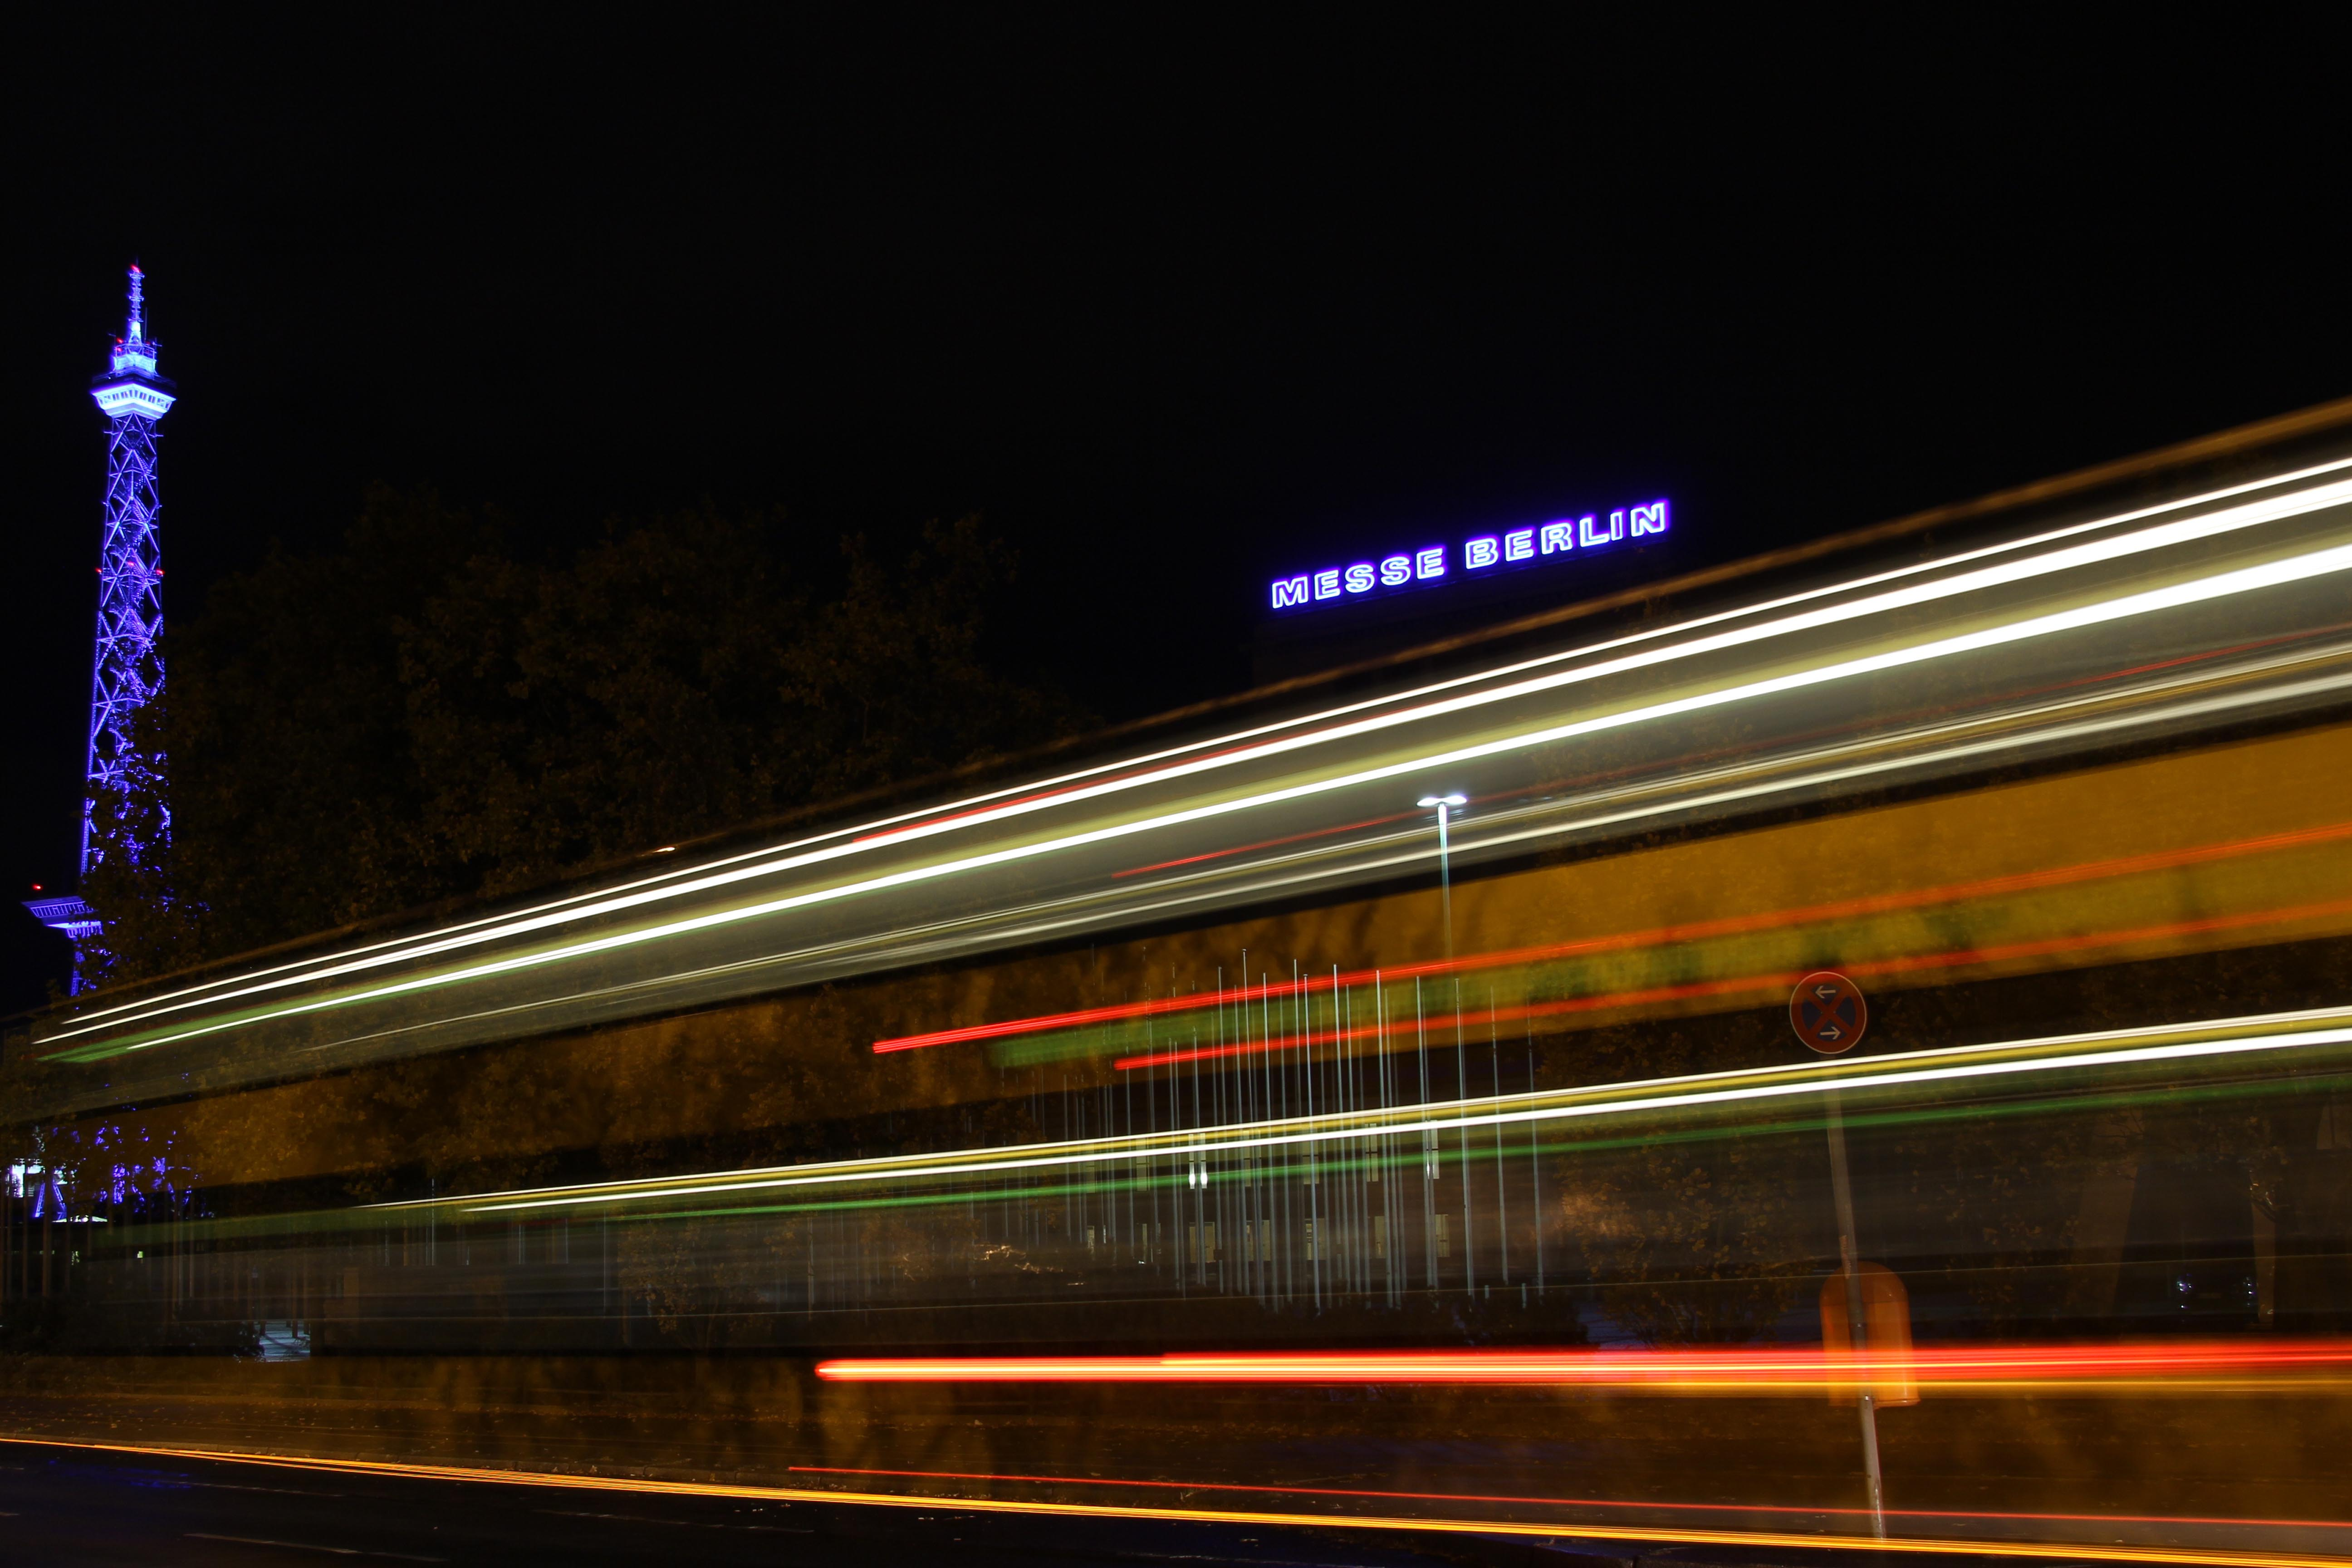 A bus streaks past the Funkturm (West Berlin TV Tower) and Messe Berlin lit up during the Festival of Lights in Berlin